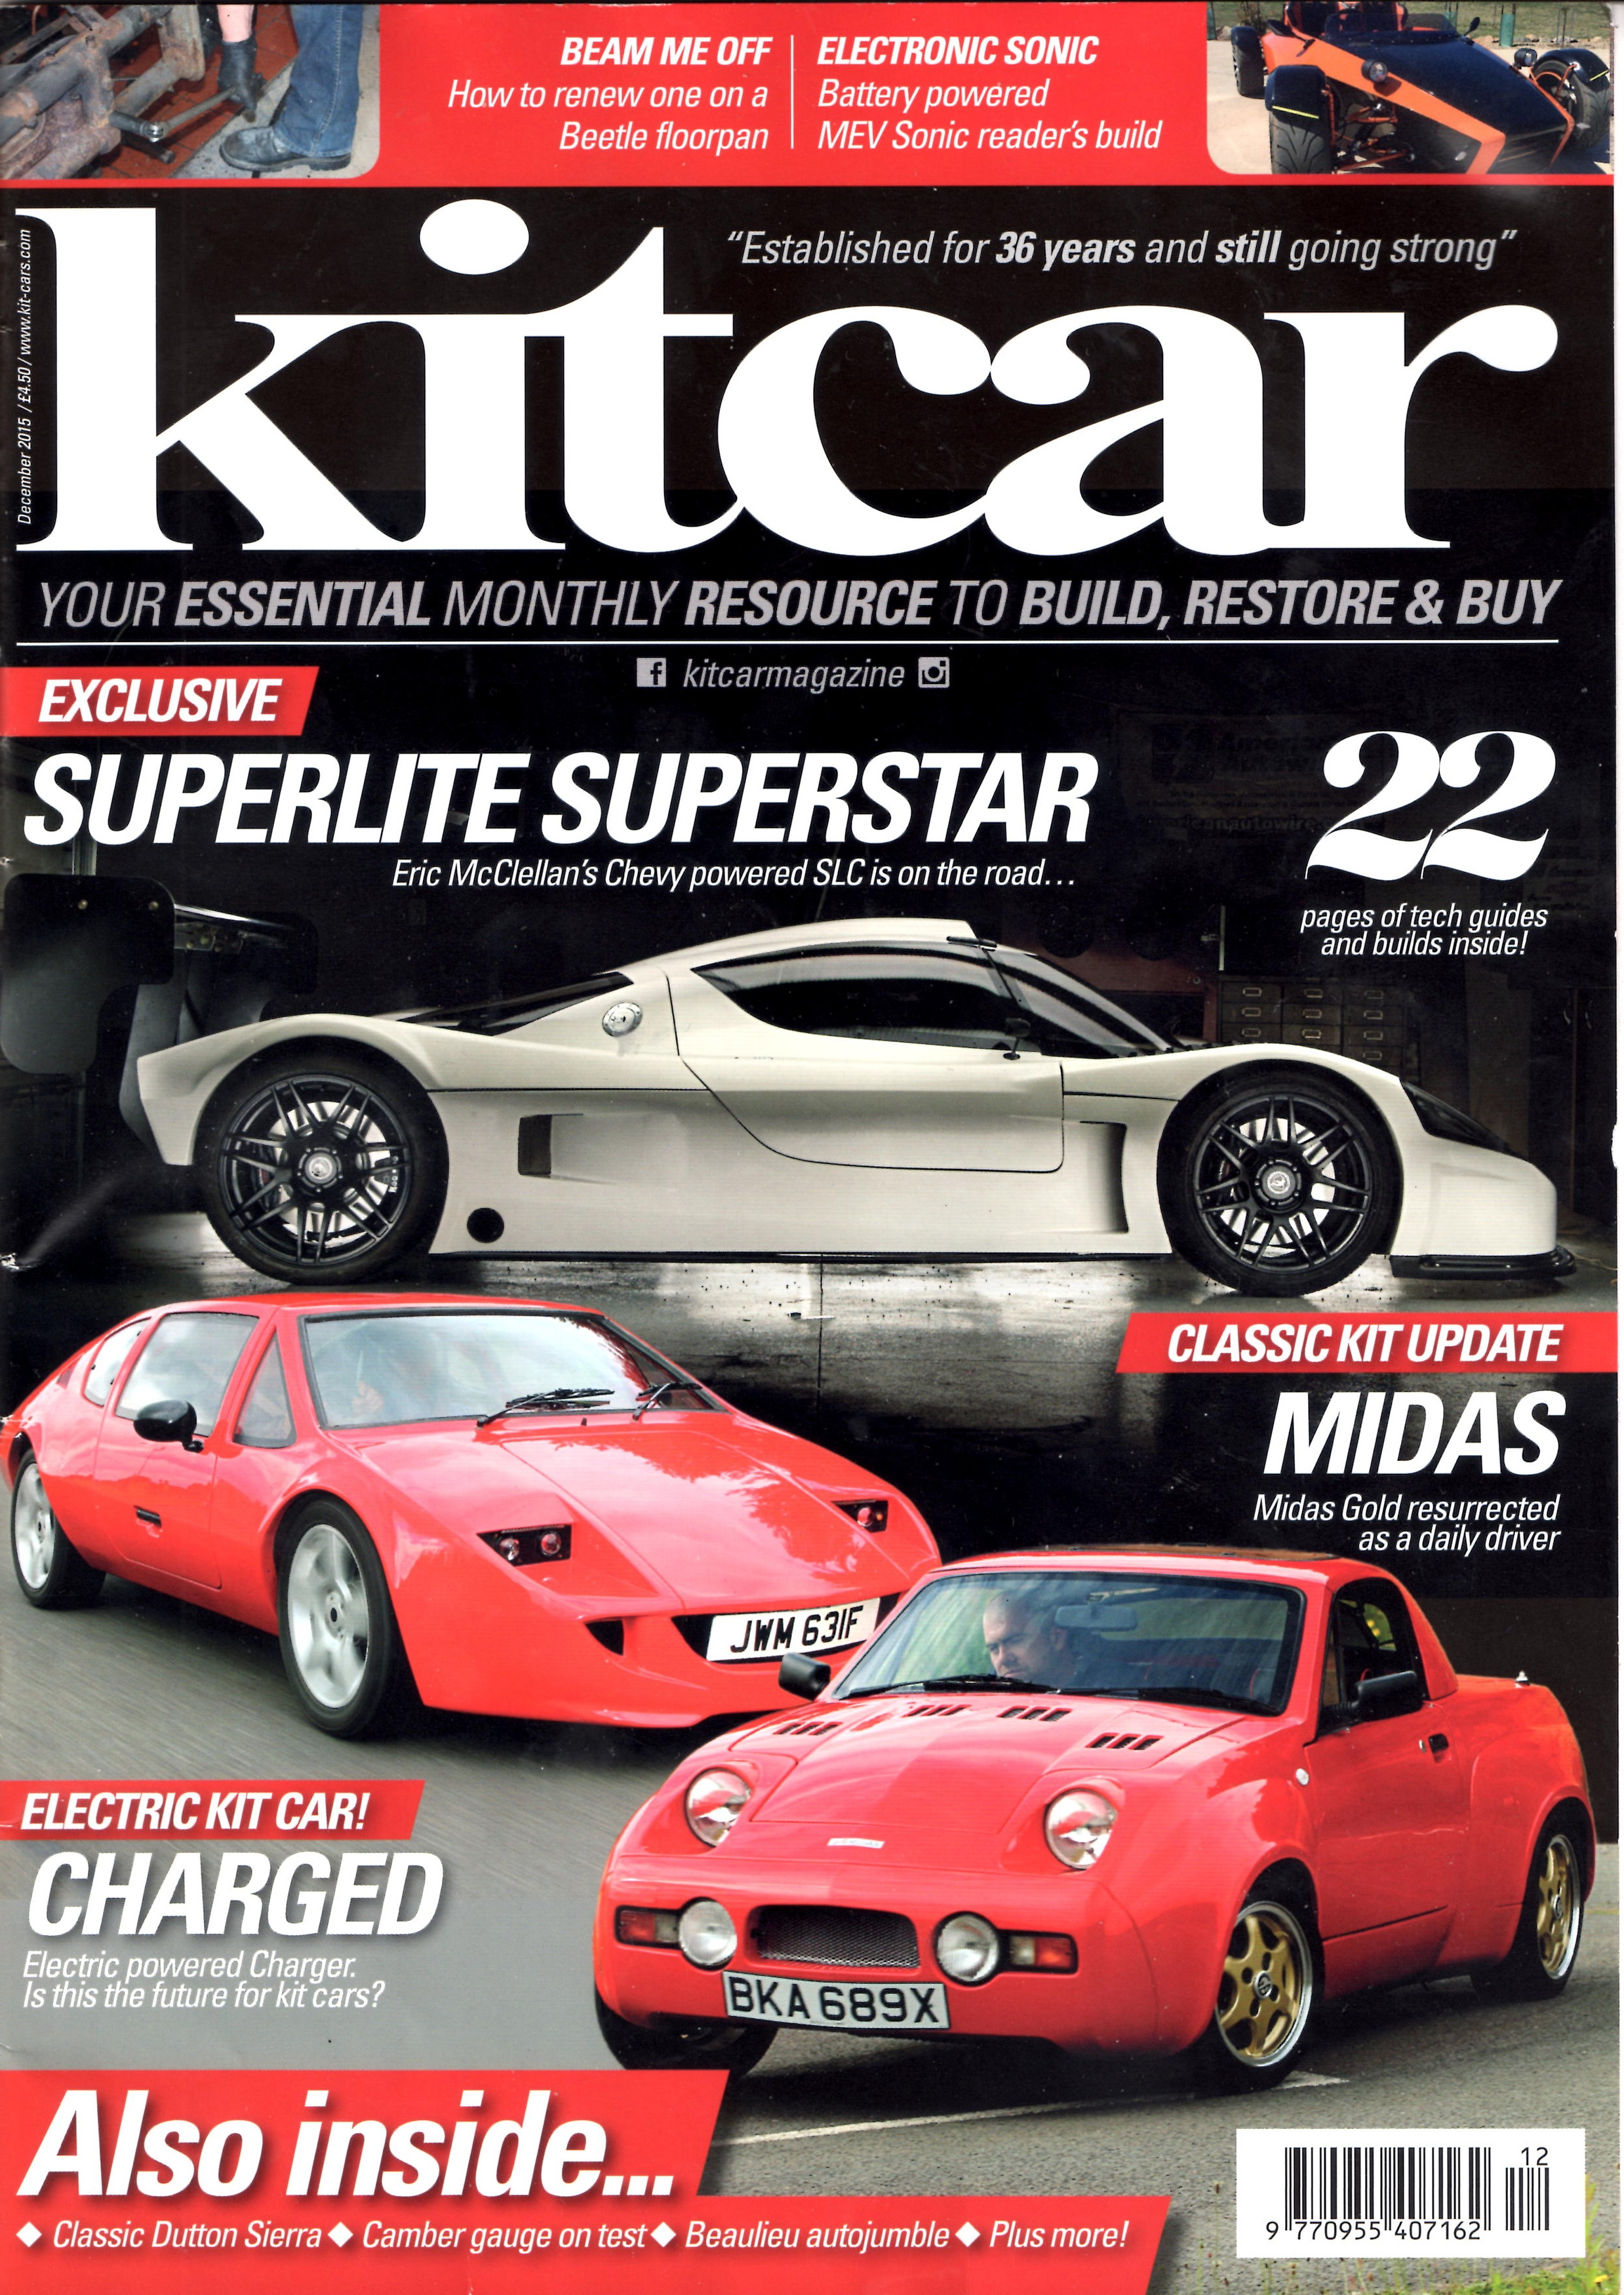 Midas Cars Featured In Kit Car And Tkc Magazines Midas Owners Club